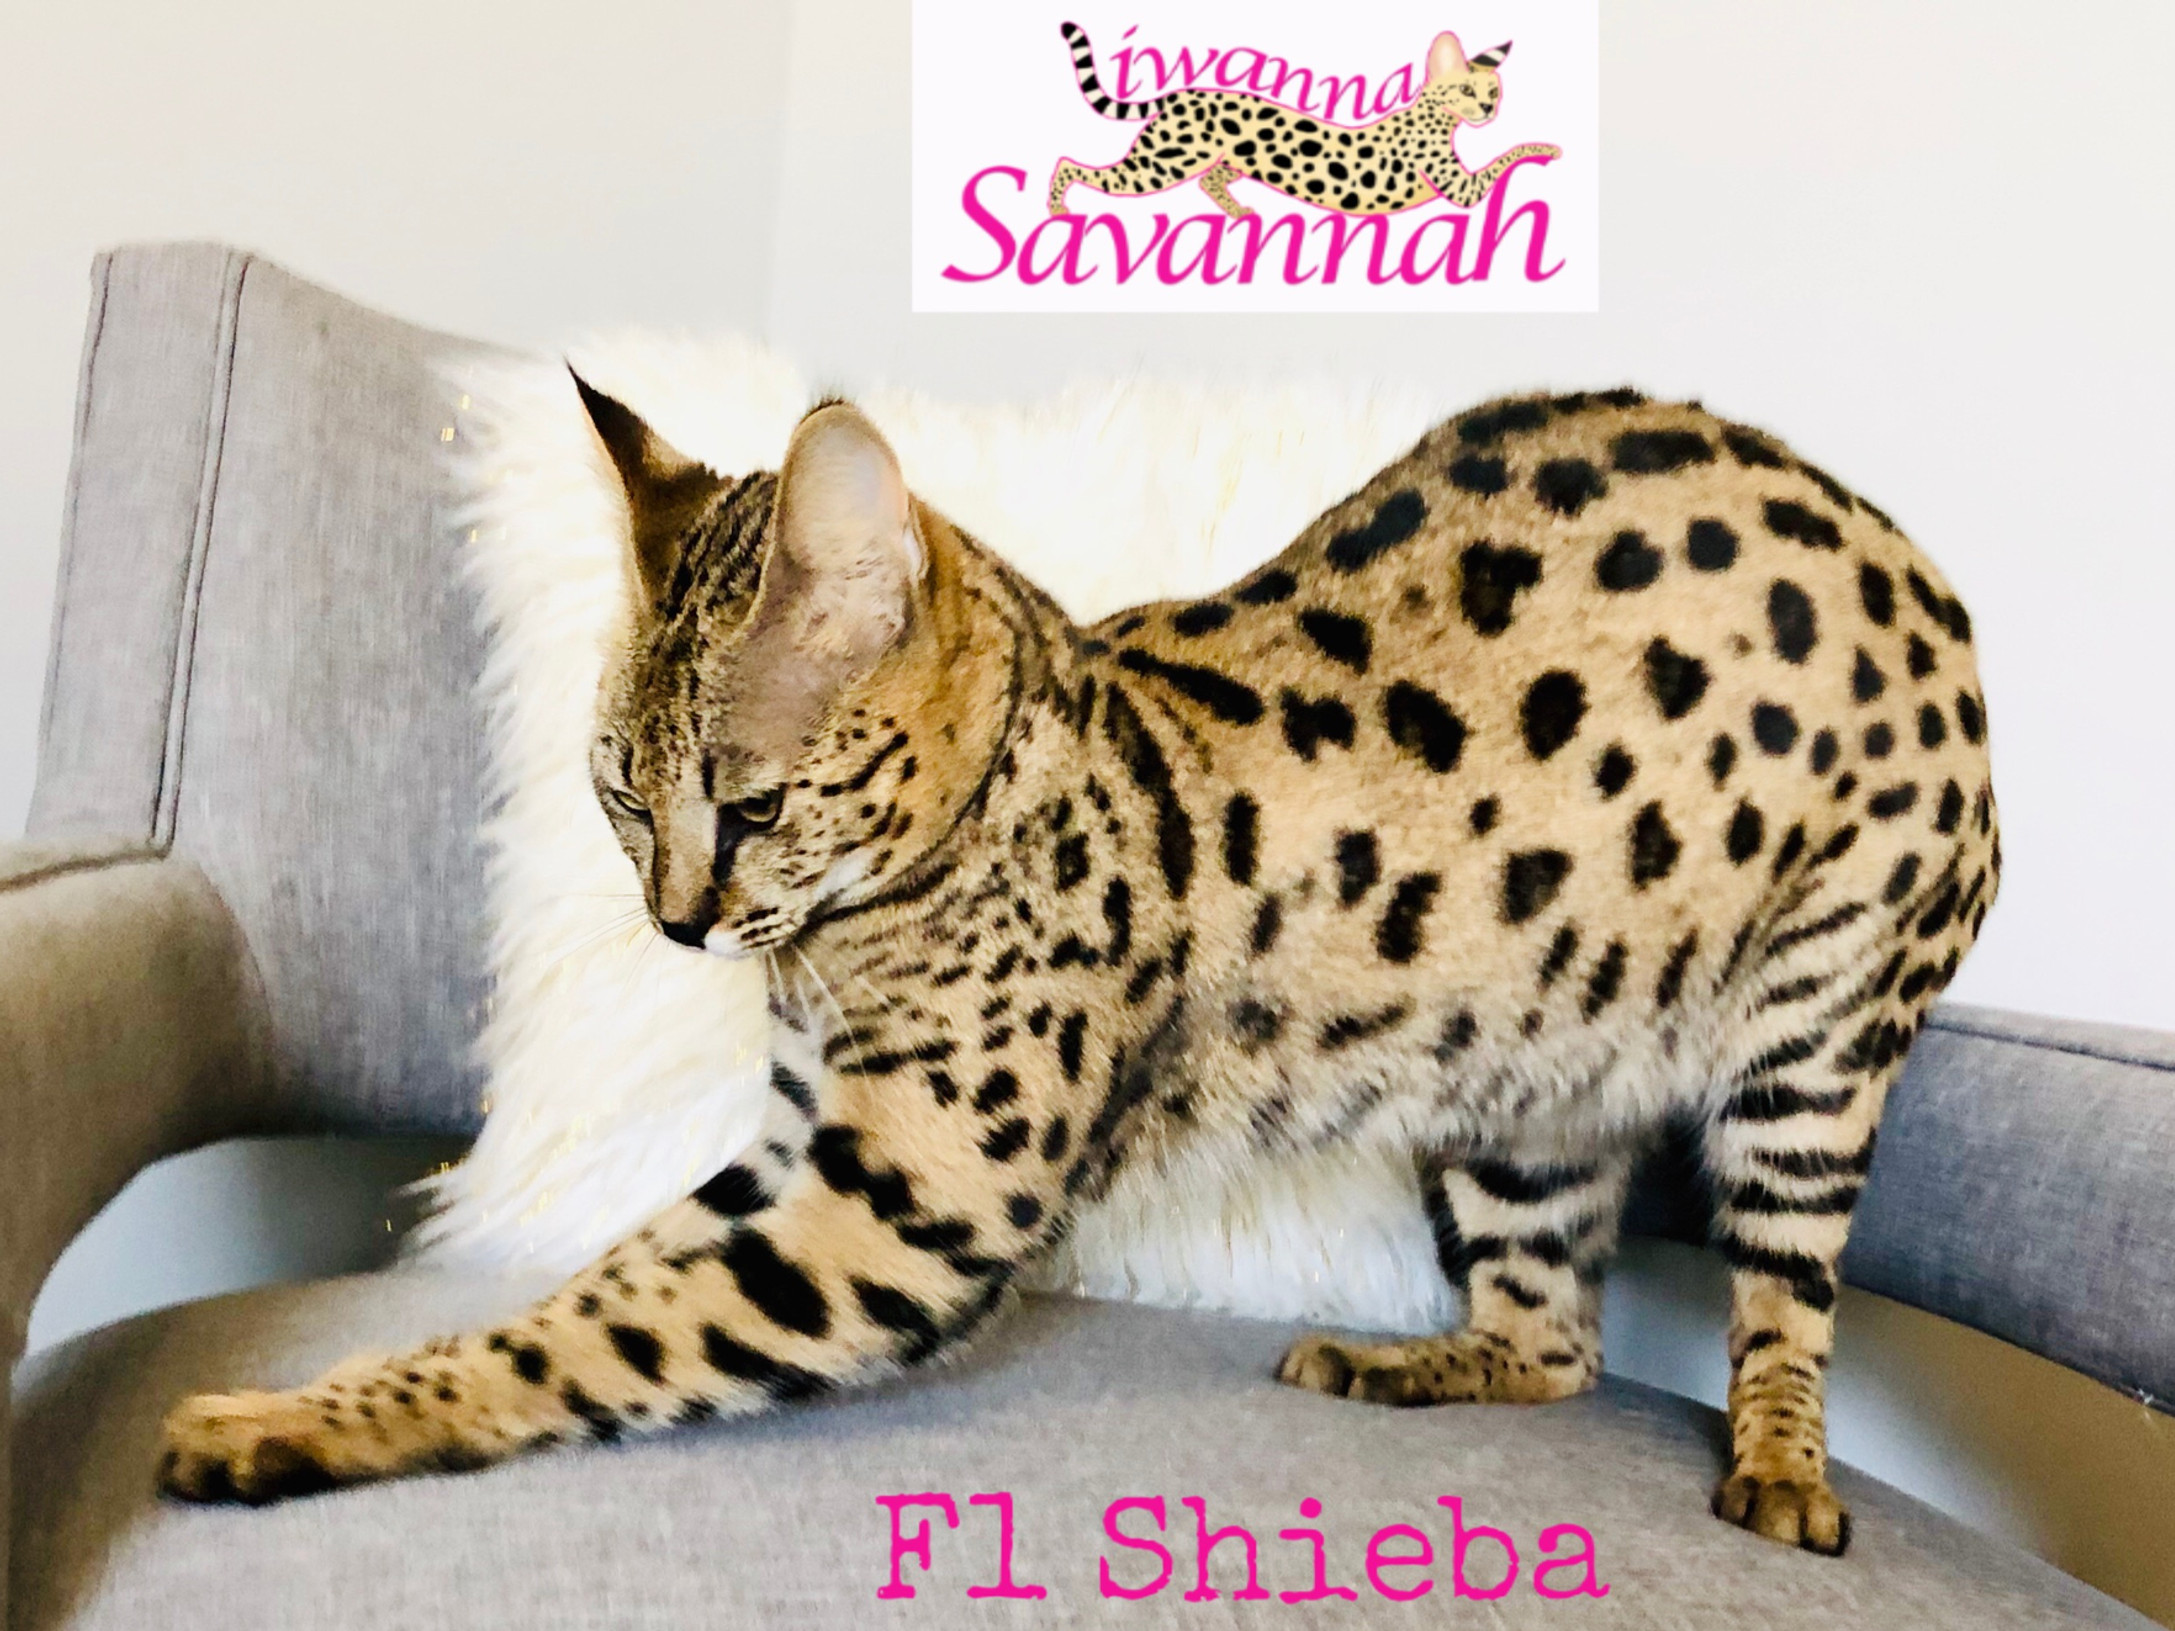 Available savannah kittens|f2 savannahs|Iwanna Savannah